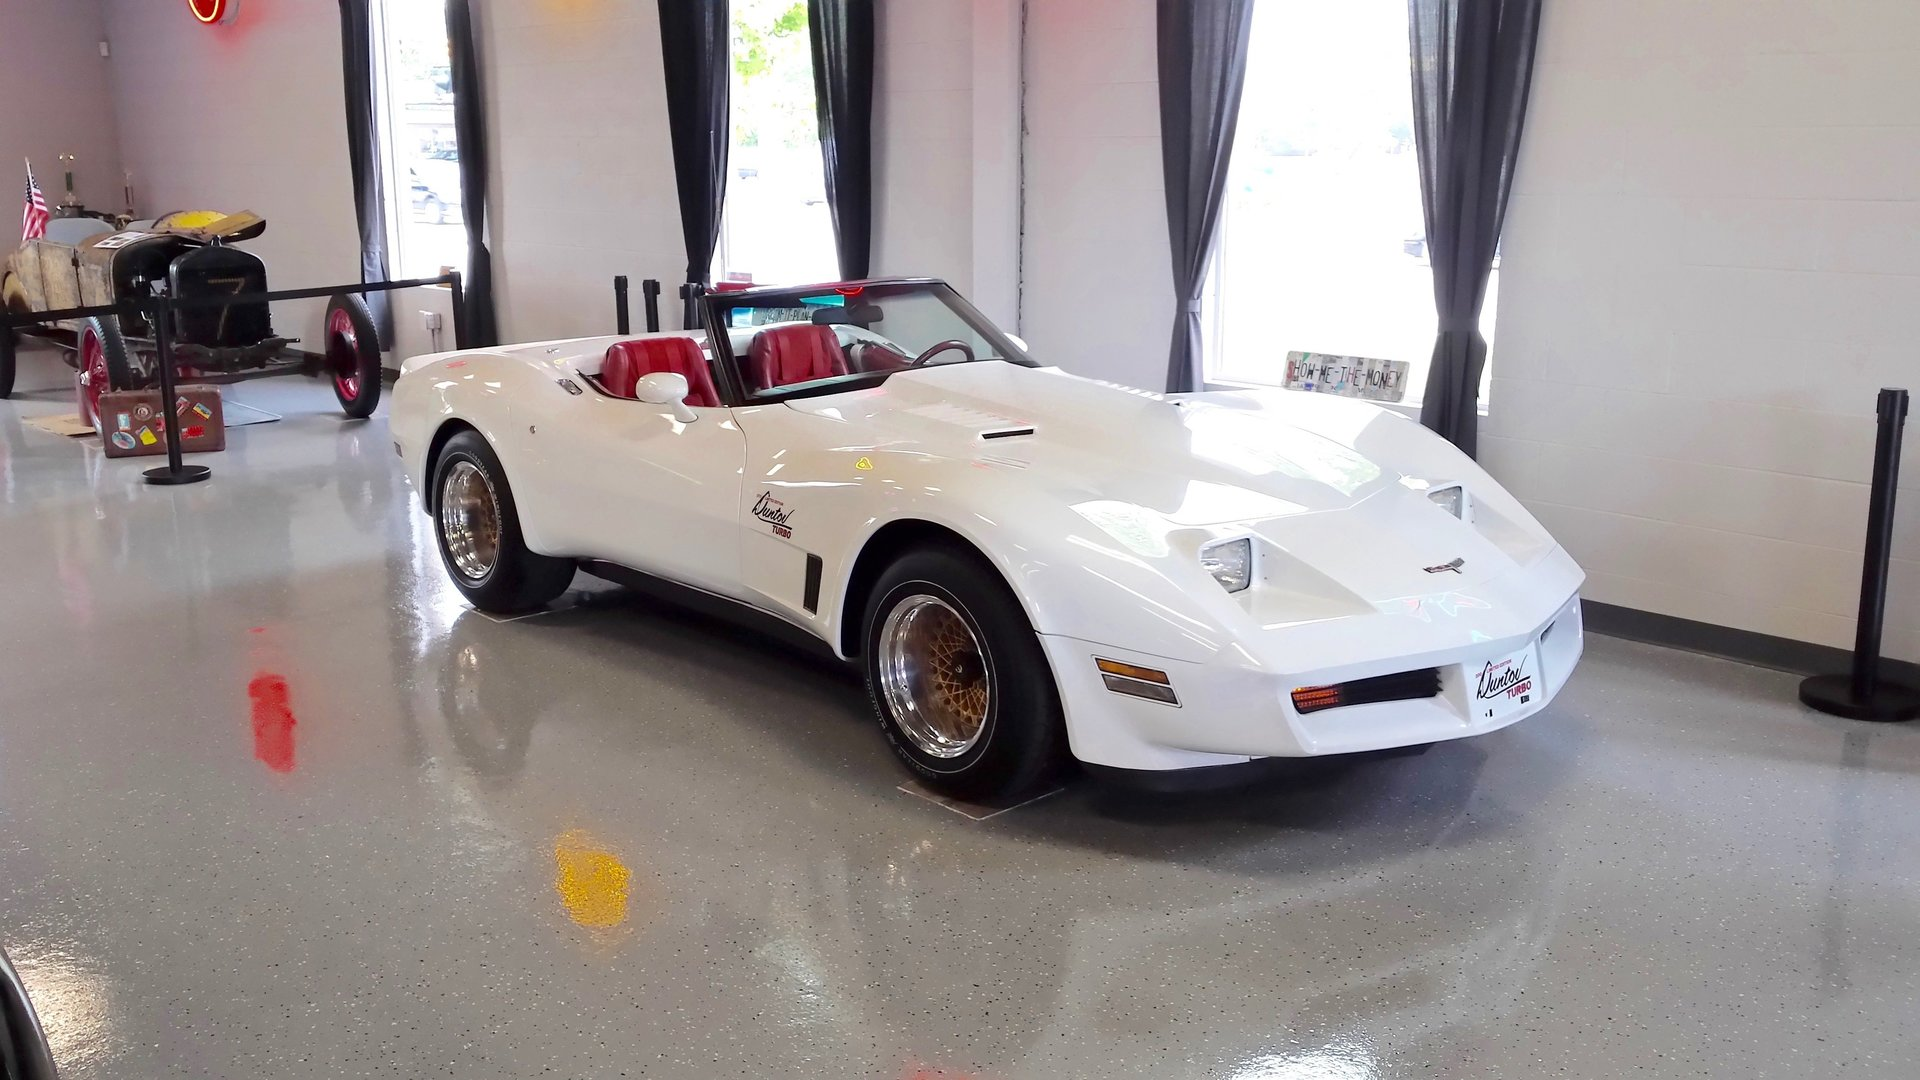 88555d8975d7 hd 1980 chevrolet corvette duntov